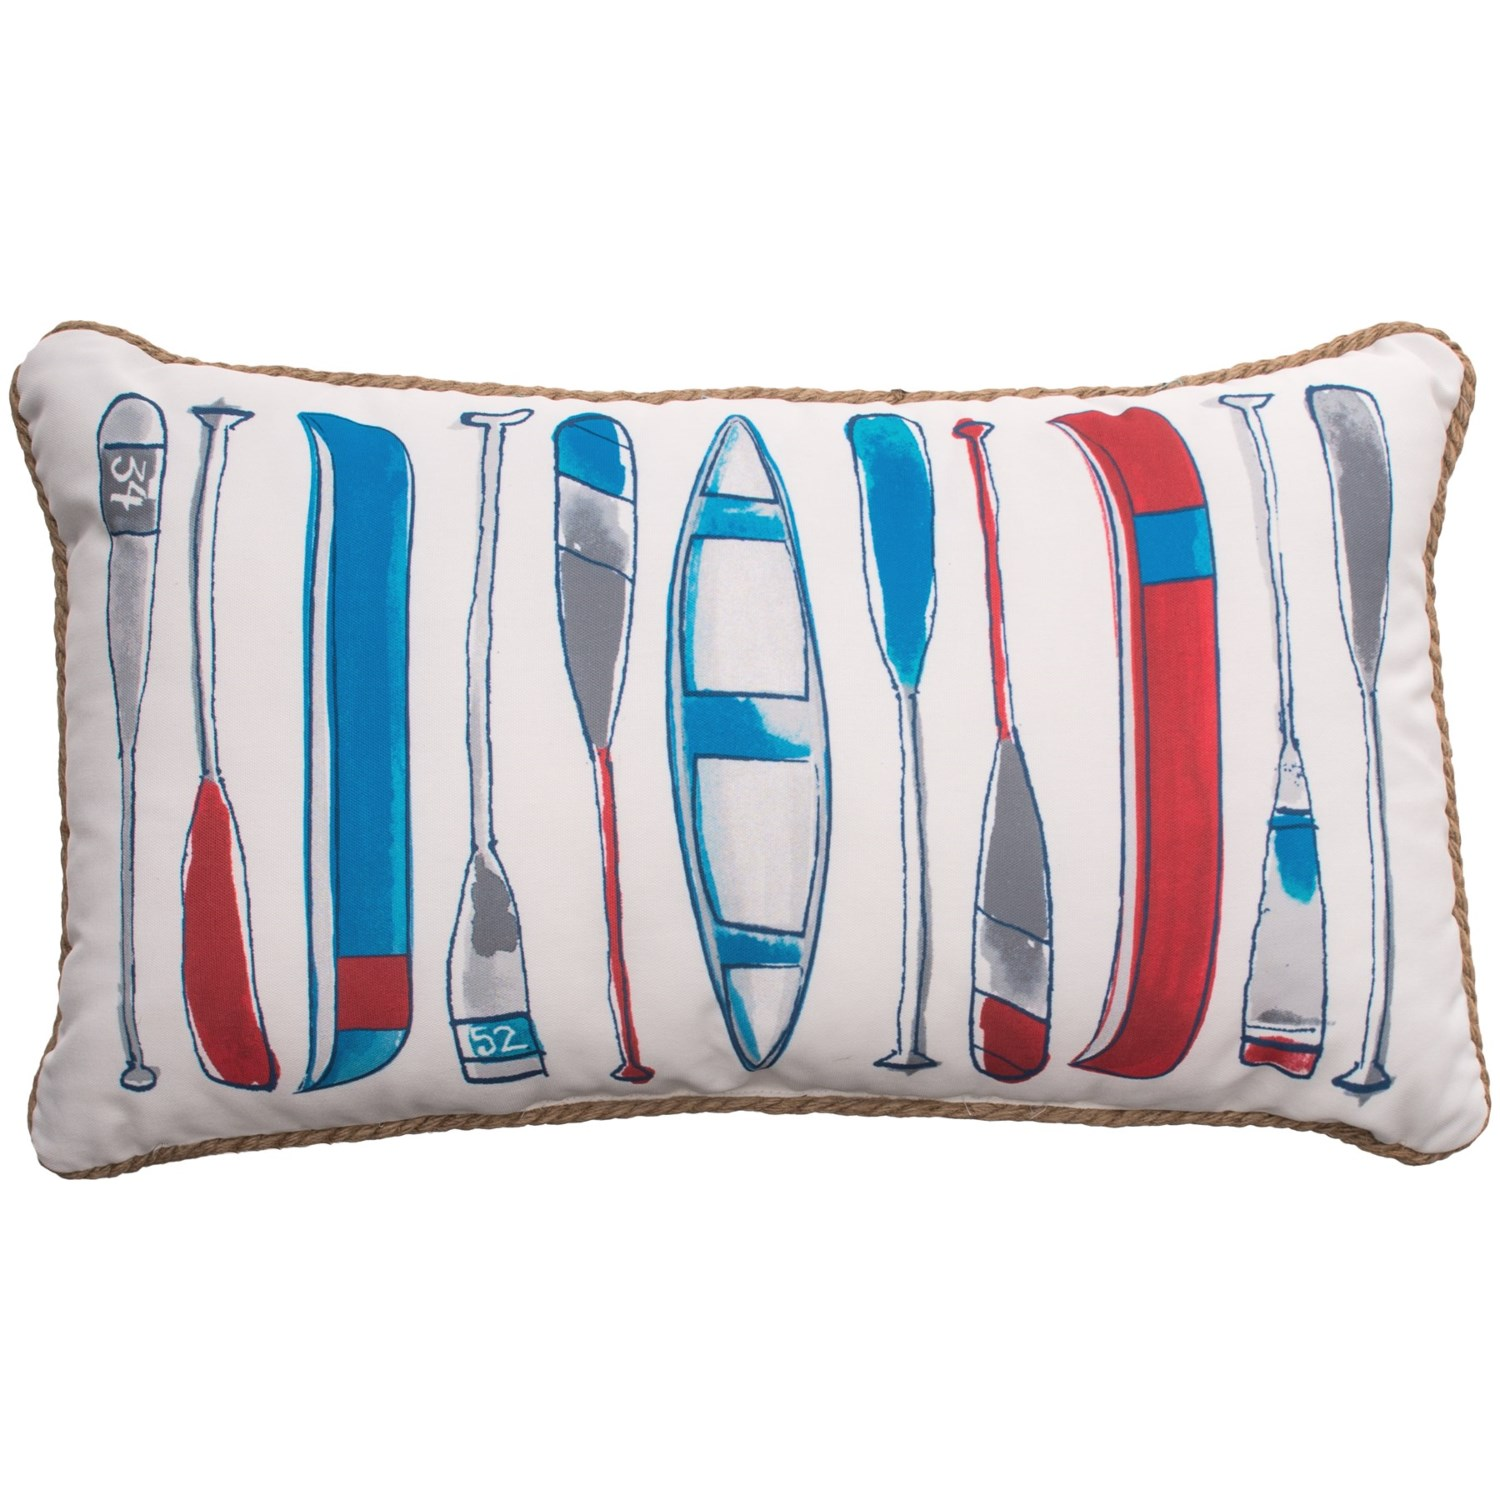 Max Studio Home Decorative Pillow : Max Studio Oars and Canoes Throw Pillow - 14x24? - Save 31%